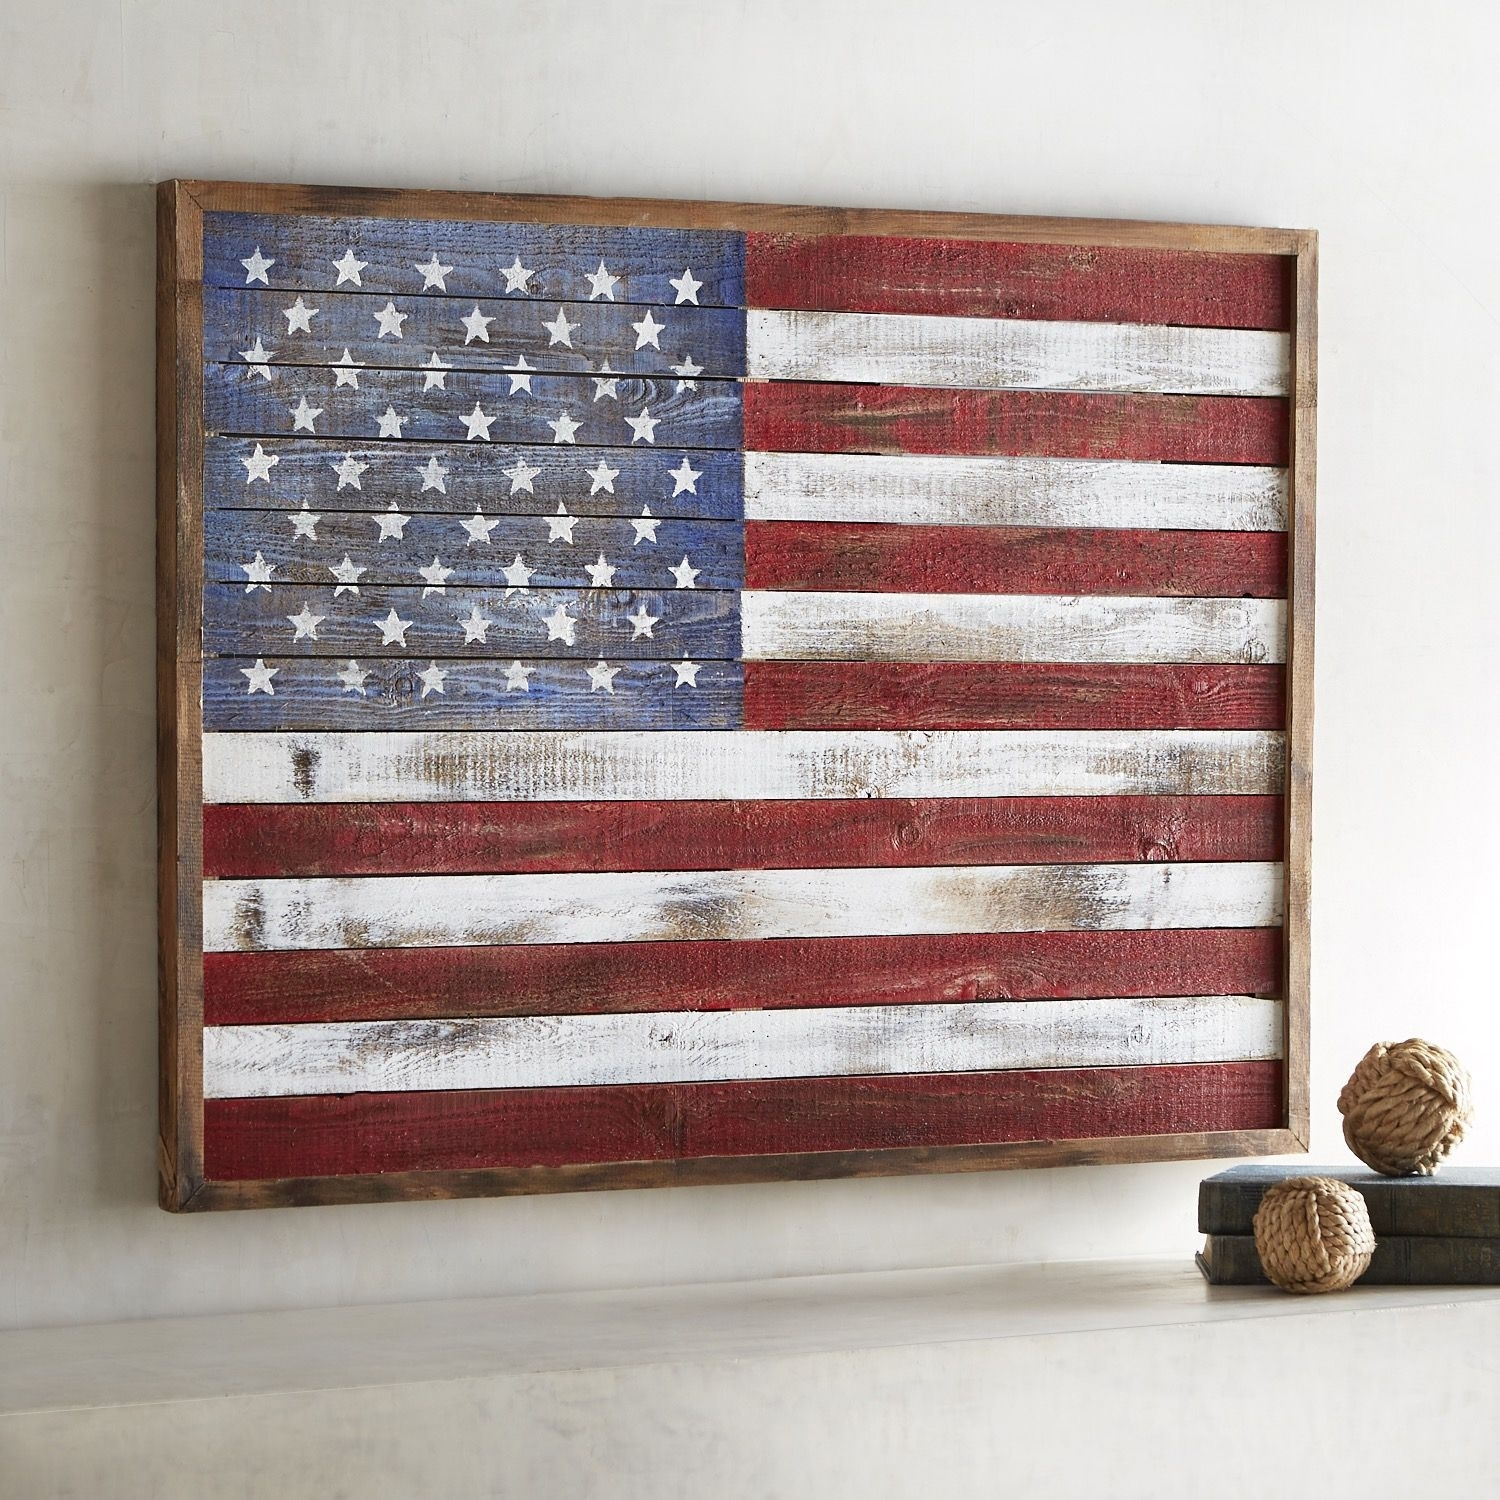 Shiplap American Flag Wall Decor | Products | Pinterest | Wall Decor Within 2018 American Flag Wall Art (View 14 of 15)